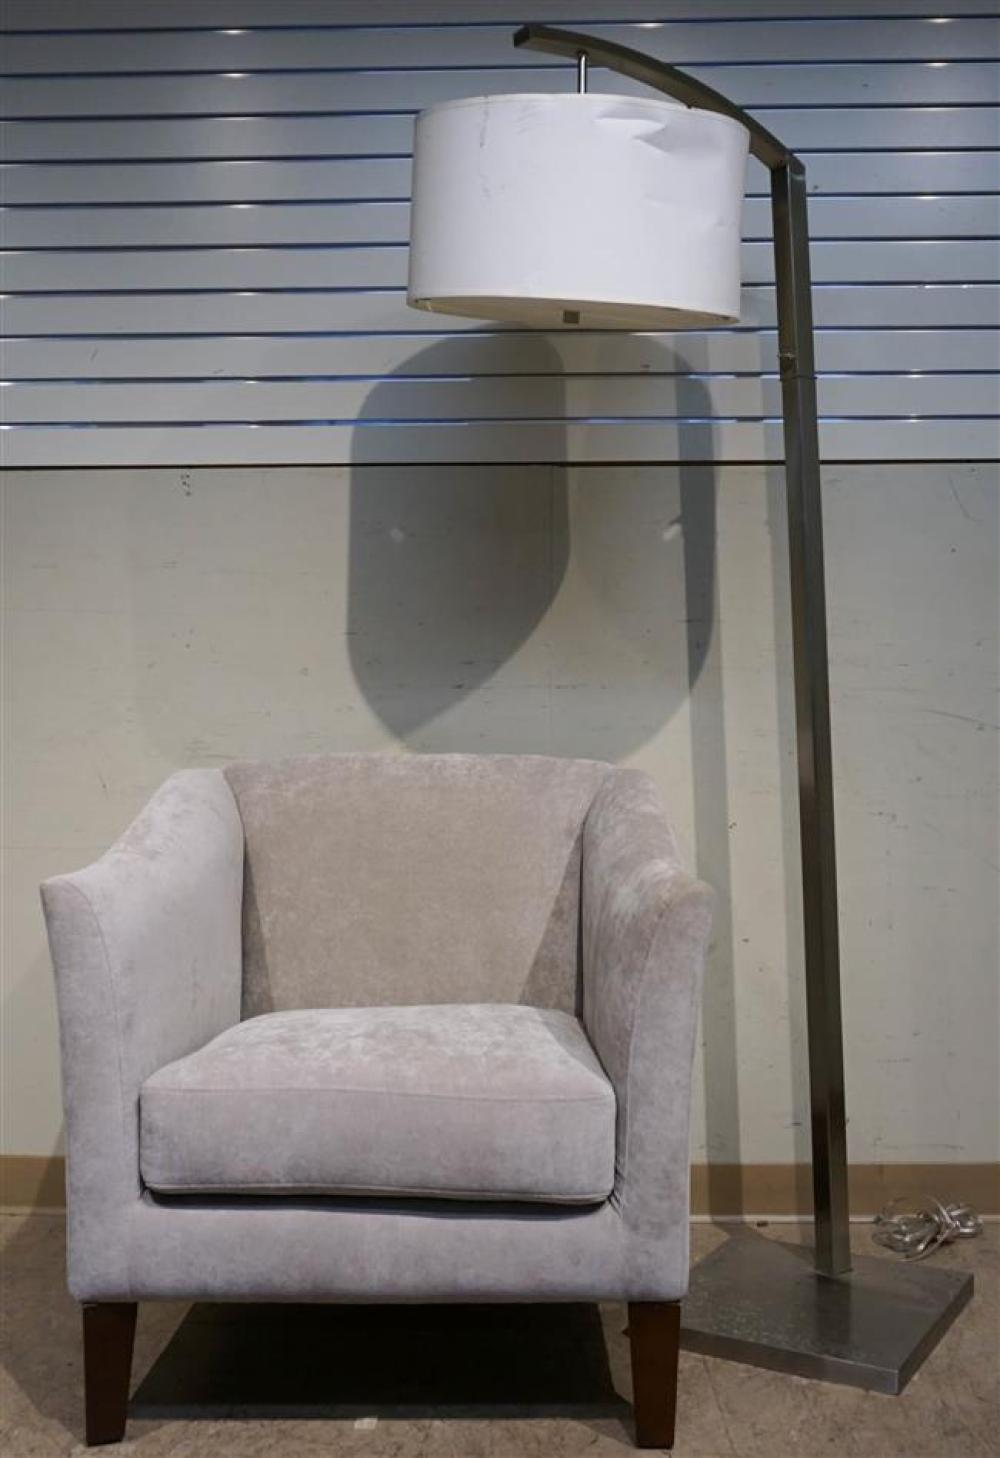 Contemporary Gray Upholstered Club Chair and Chrome Plate Floor Lamp